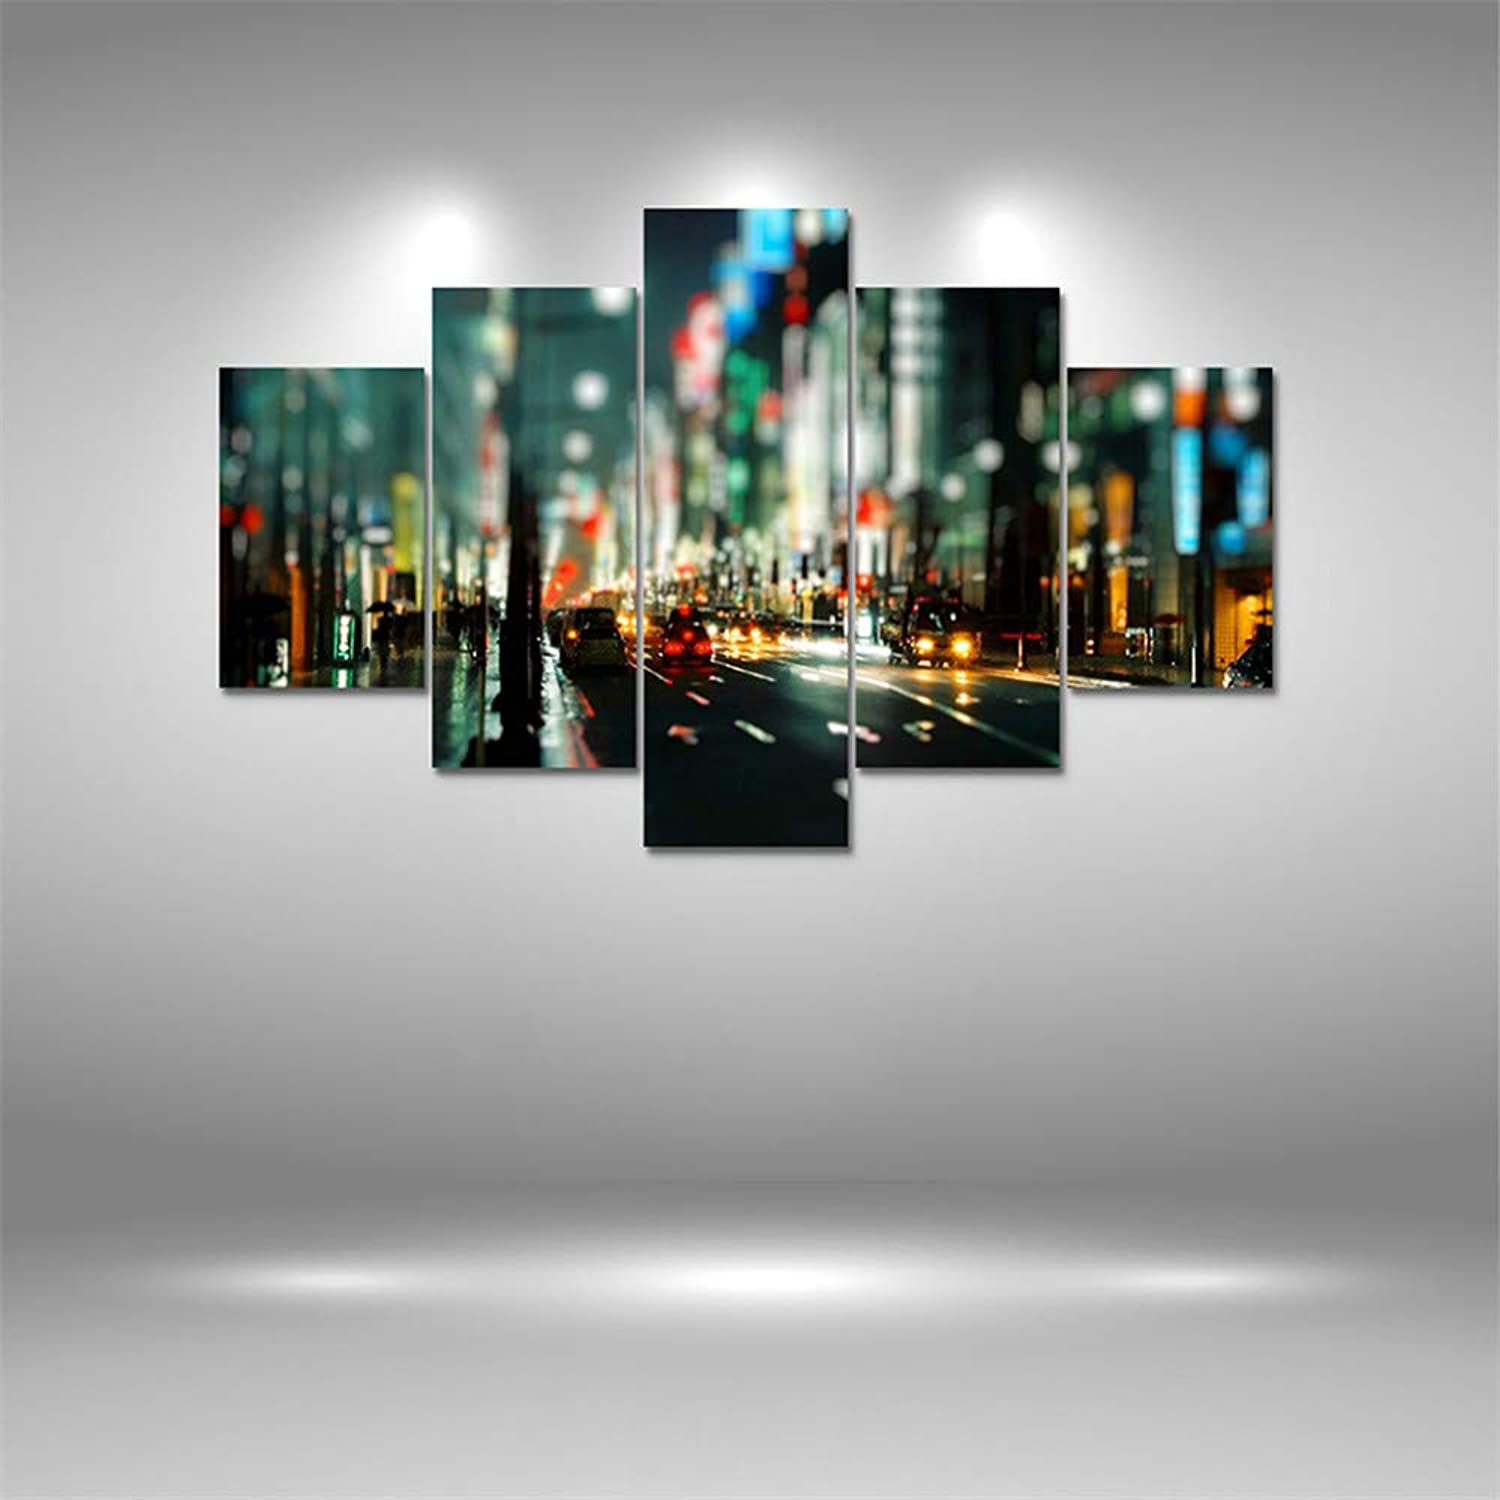 Loiazh  Image Printed On Non Woven Canvas  Wall Art Print Picture  Photo  5 Pieces  Frameless  Night Street 55x22 45x20x2 35x20x2(cm)